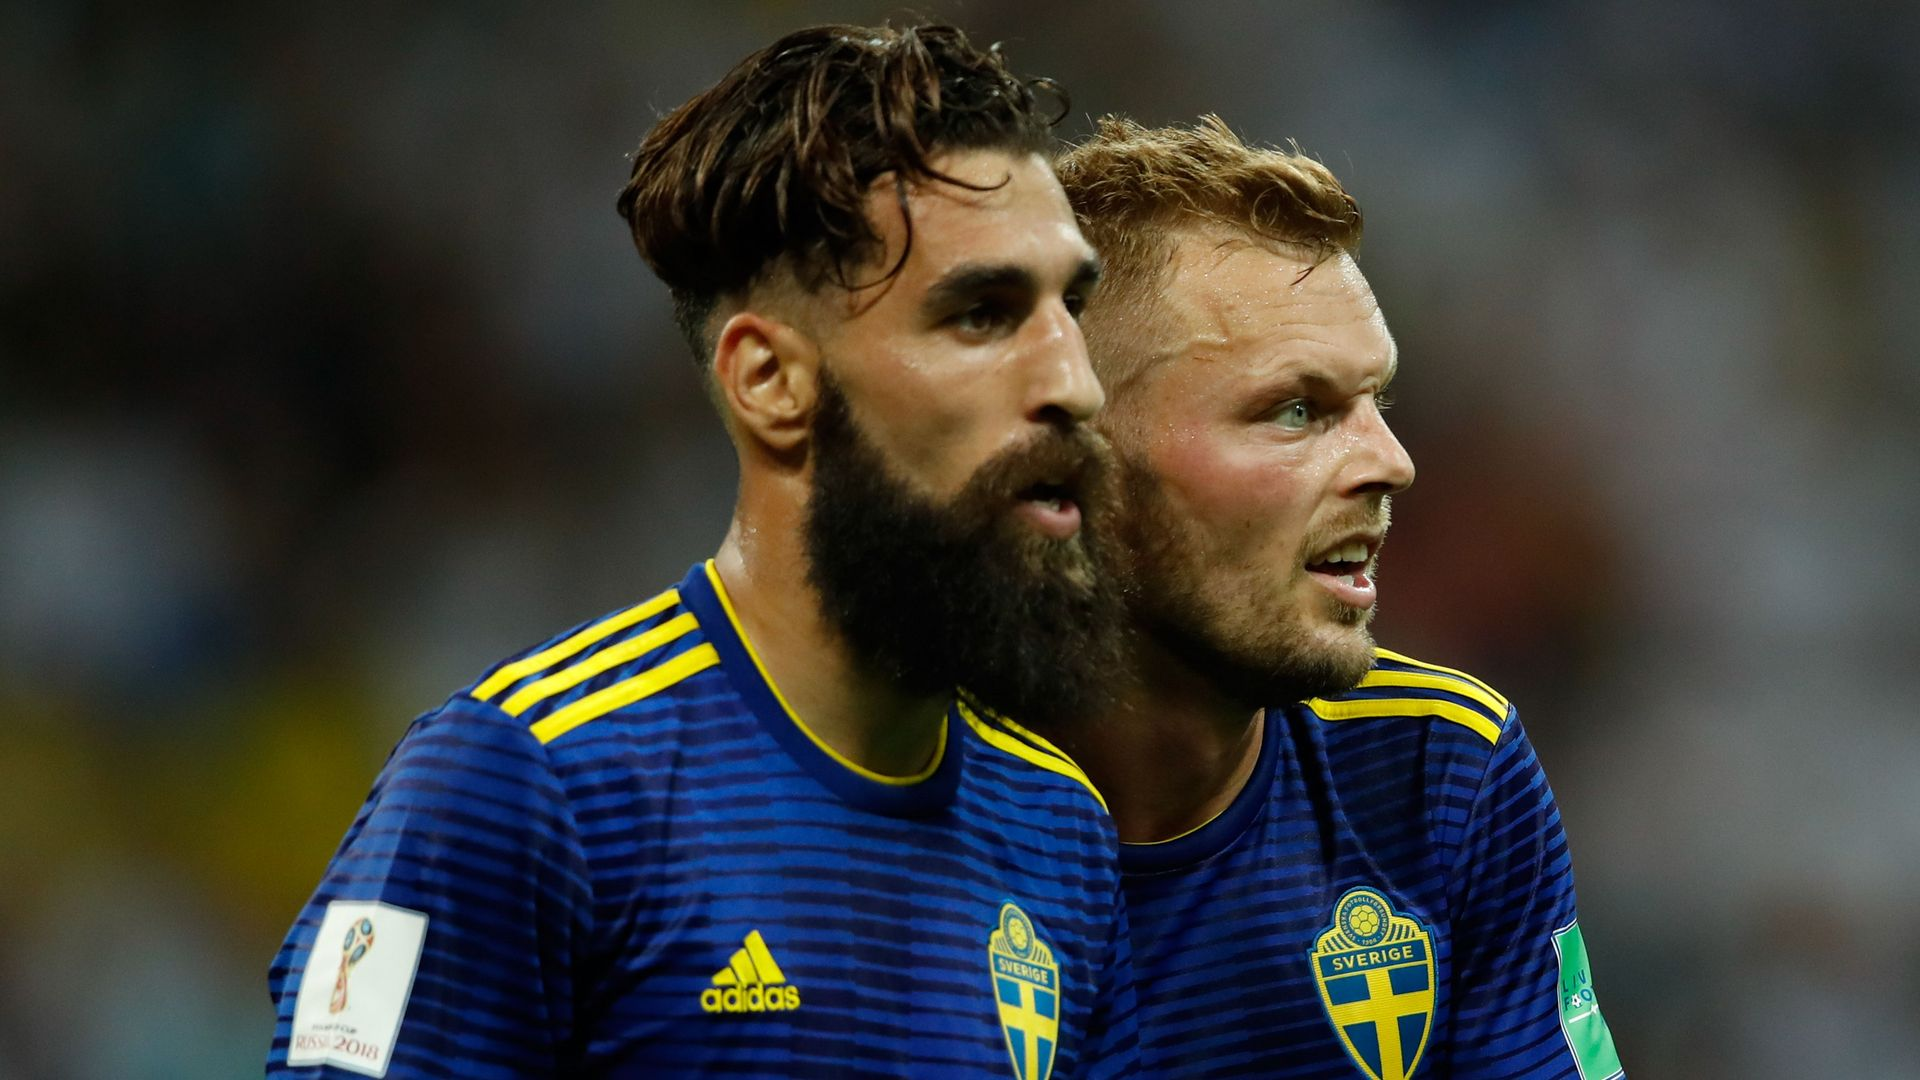 Sweden's Jimmy Durmaz defended by team-mates after racial abuse